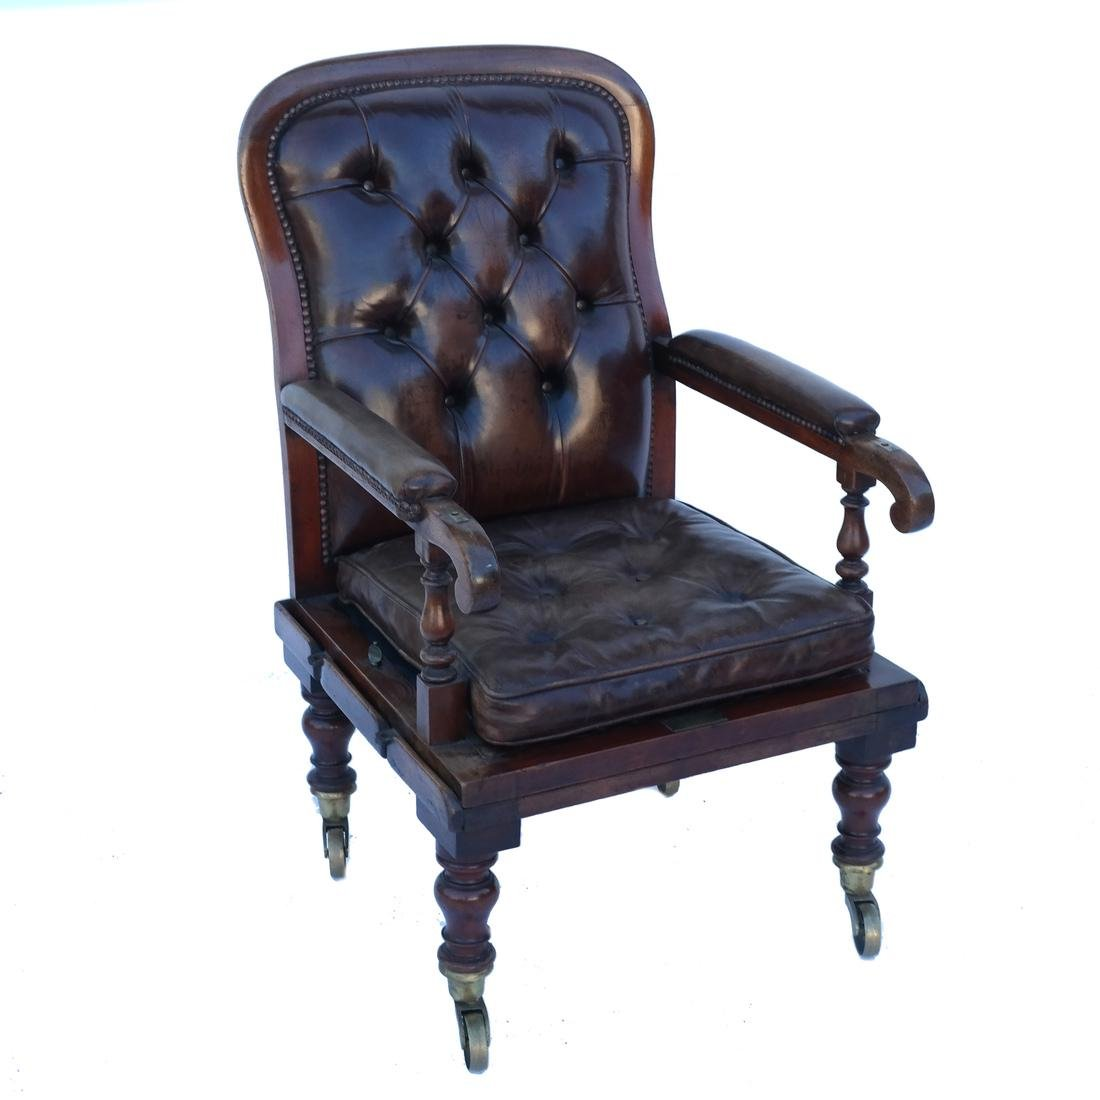 English Regency Campaign Chair